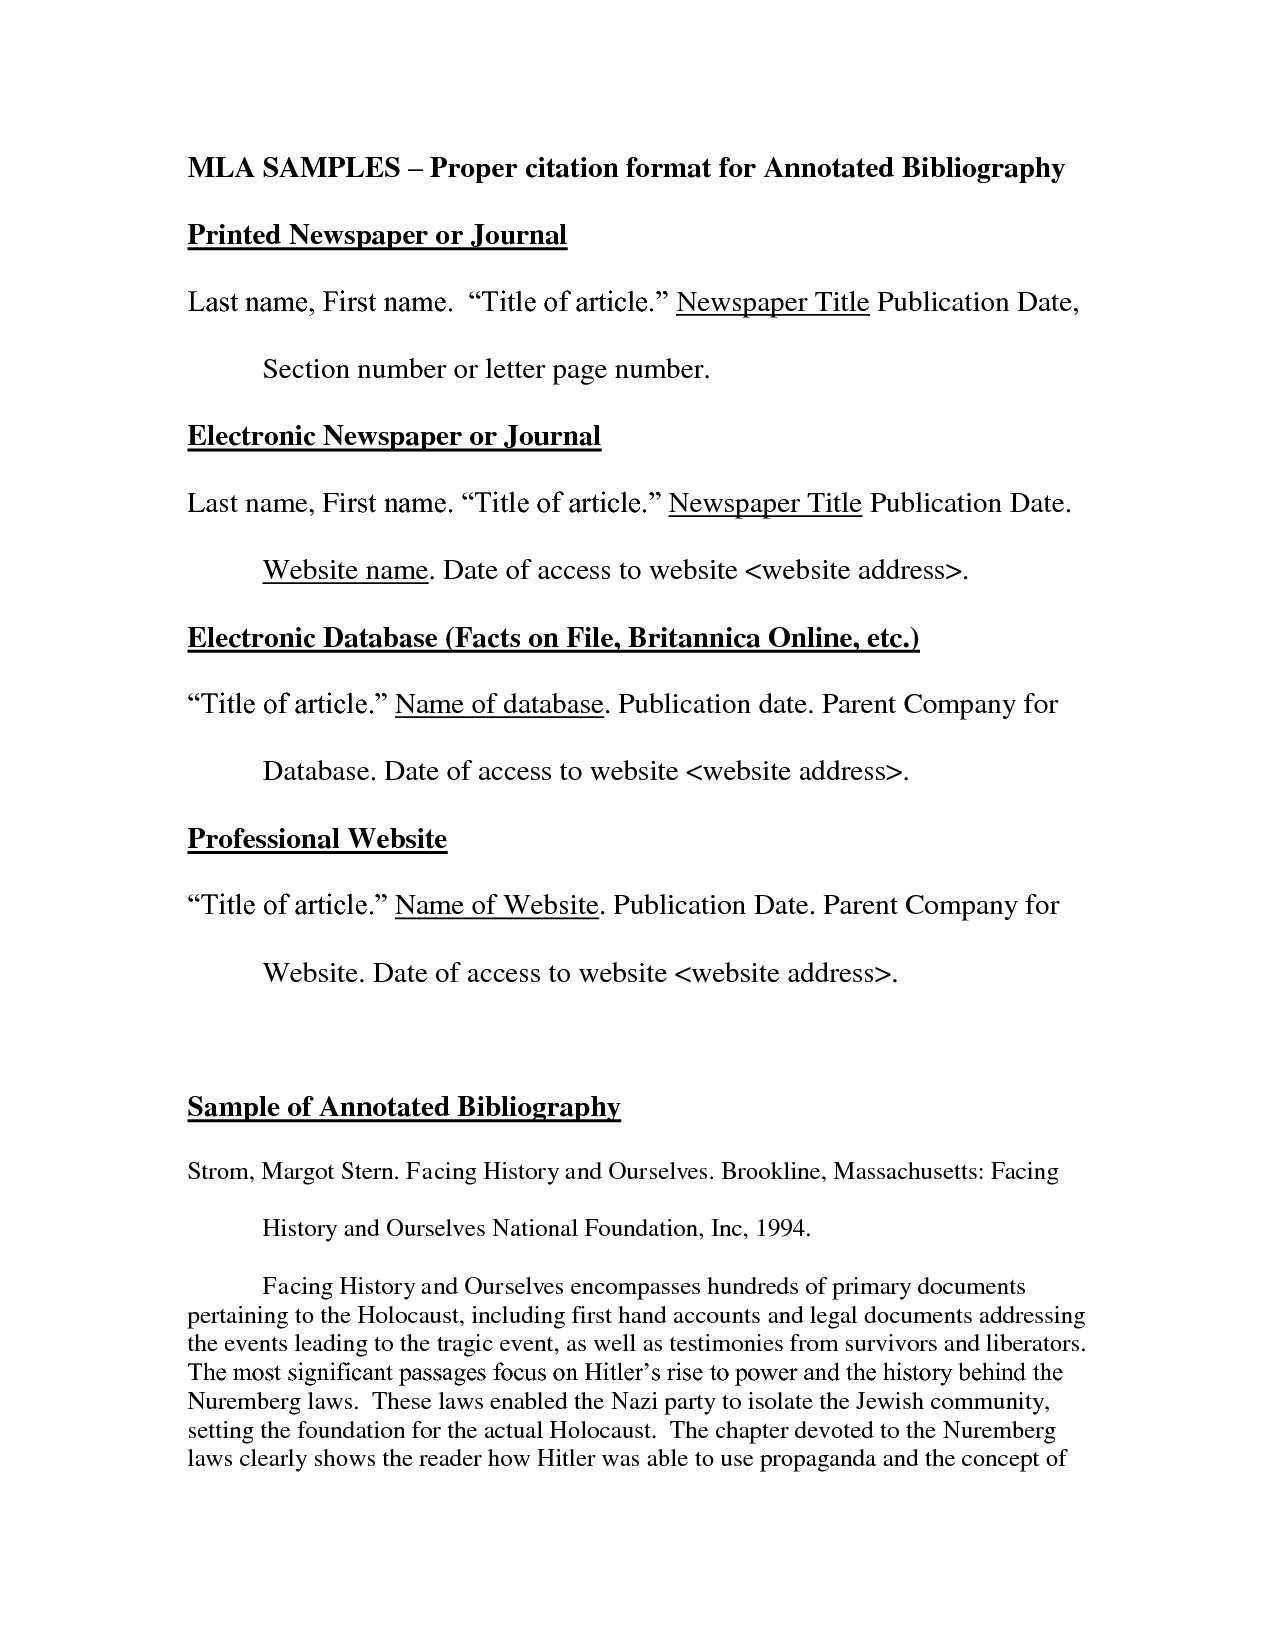 018 Bunch Ideas Of Images Mla Format Reference Page Template Sample Essay With Citations Scarlet Letter Inspirationa Works Cited Best Citin Paper Cover Example Annotated Bibliography Full